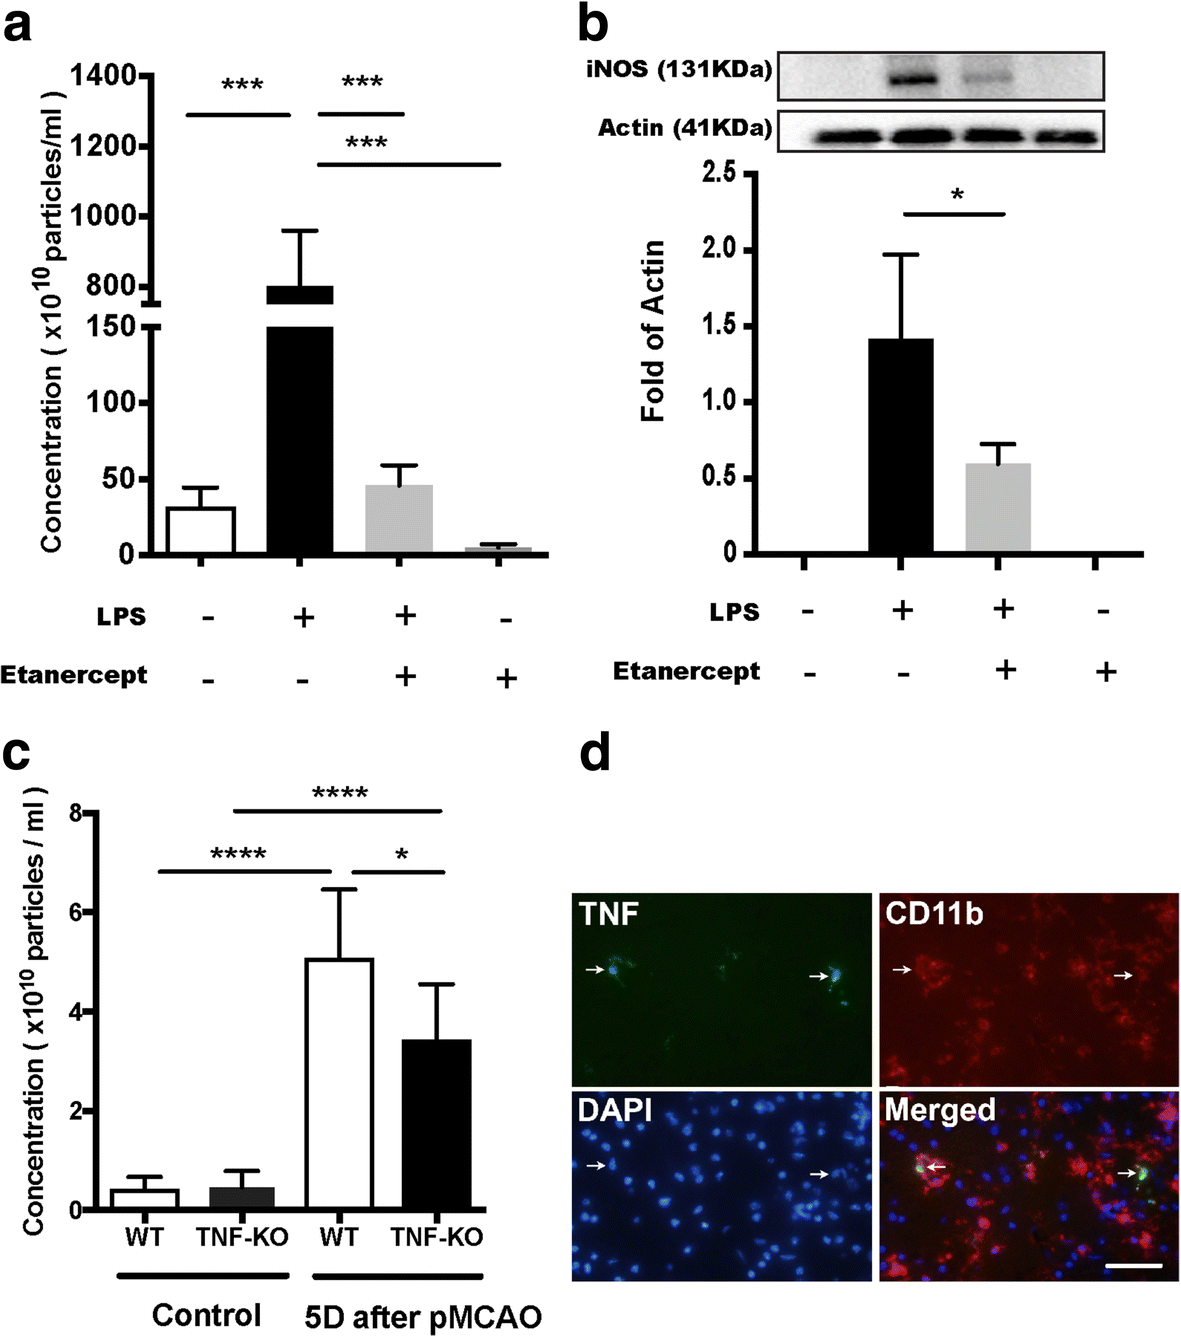 Inflammation Leads To Distinct Populations Of Extracellular Vesicles Friend Description Ev Electrical Wiring Diagrams Schematics And Fig 3